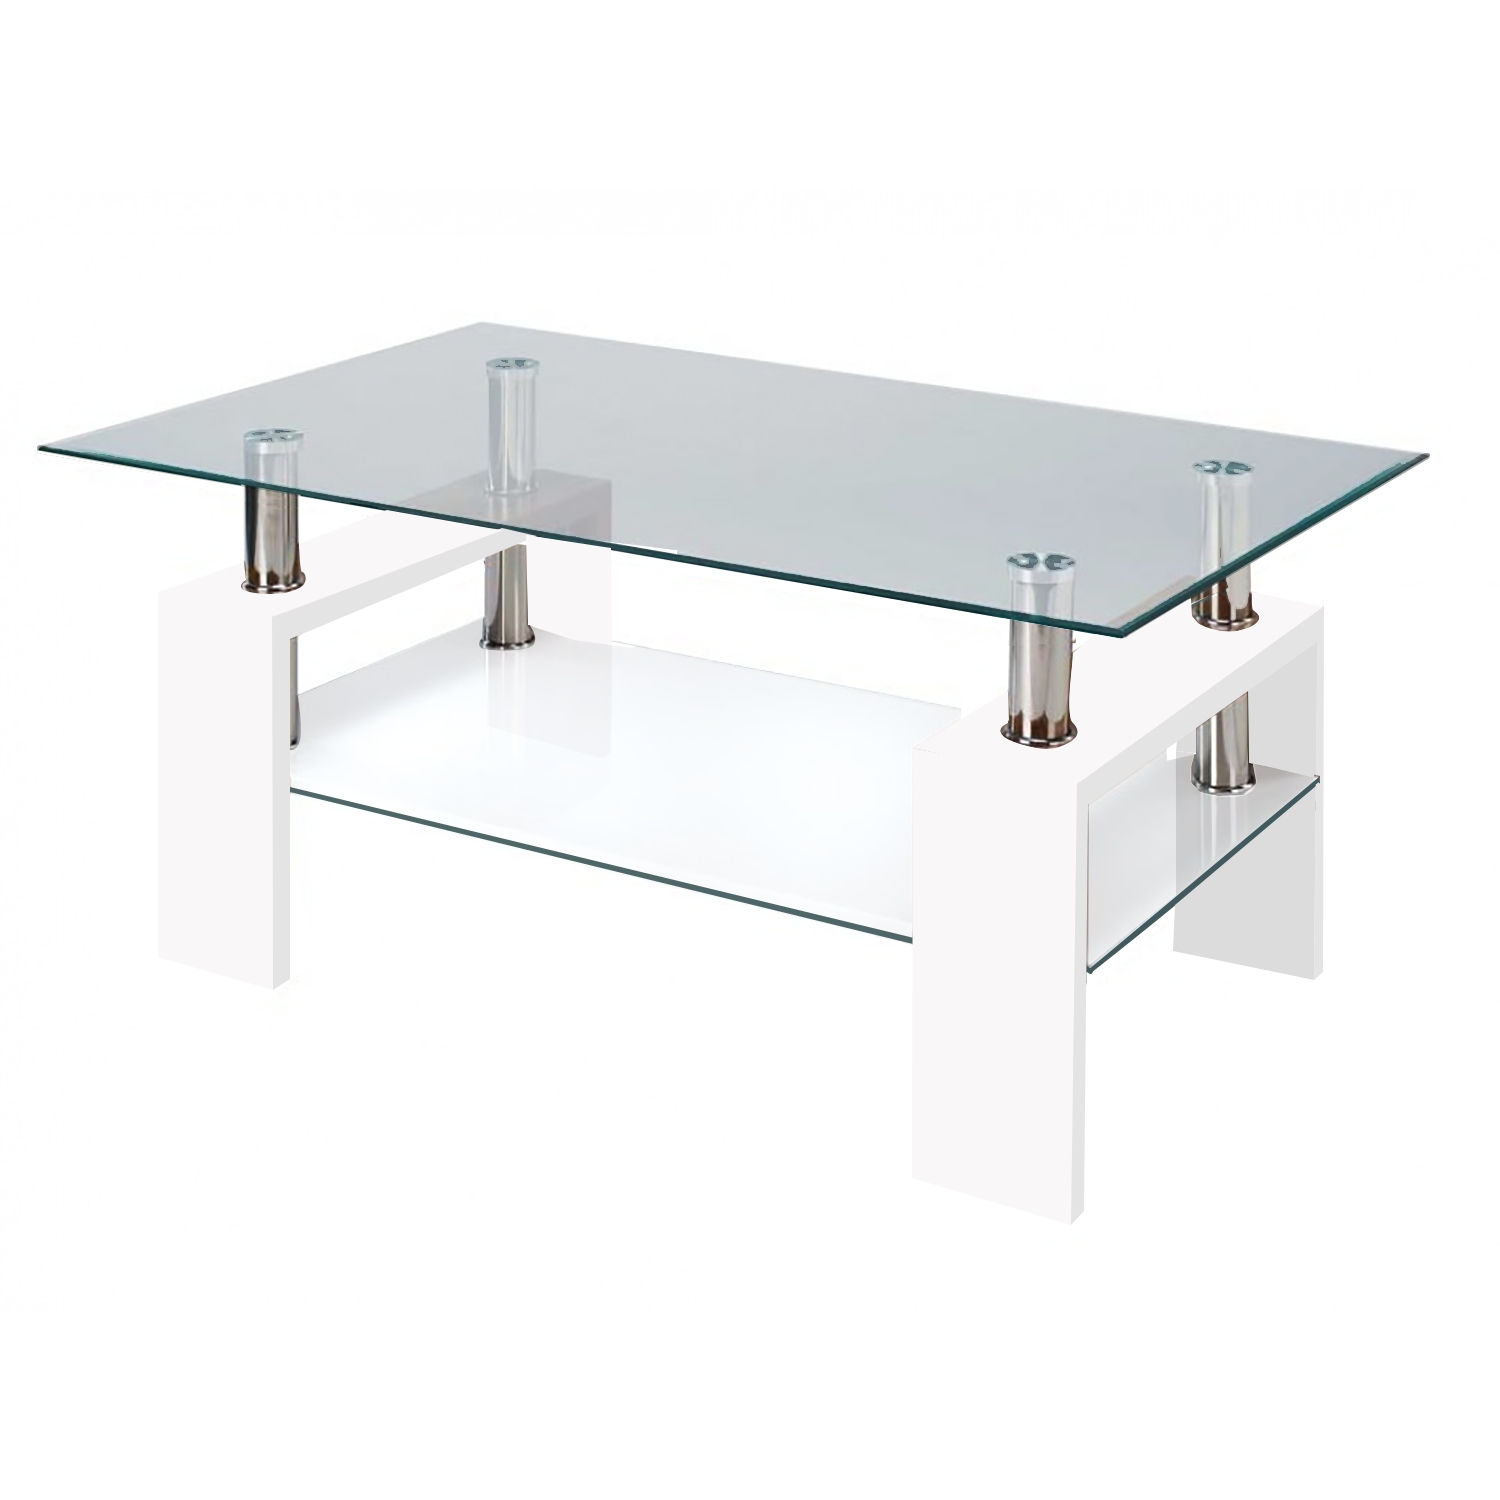 Modern Glass White Coffee Table With Shelf Contemporary regarding White and Glass Coffee Tables (Image 21 of 30)